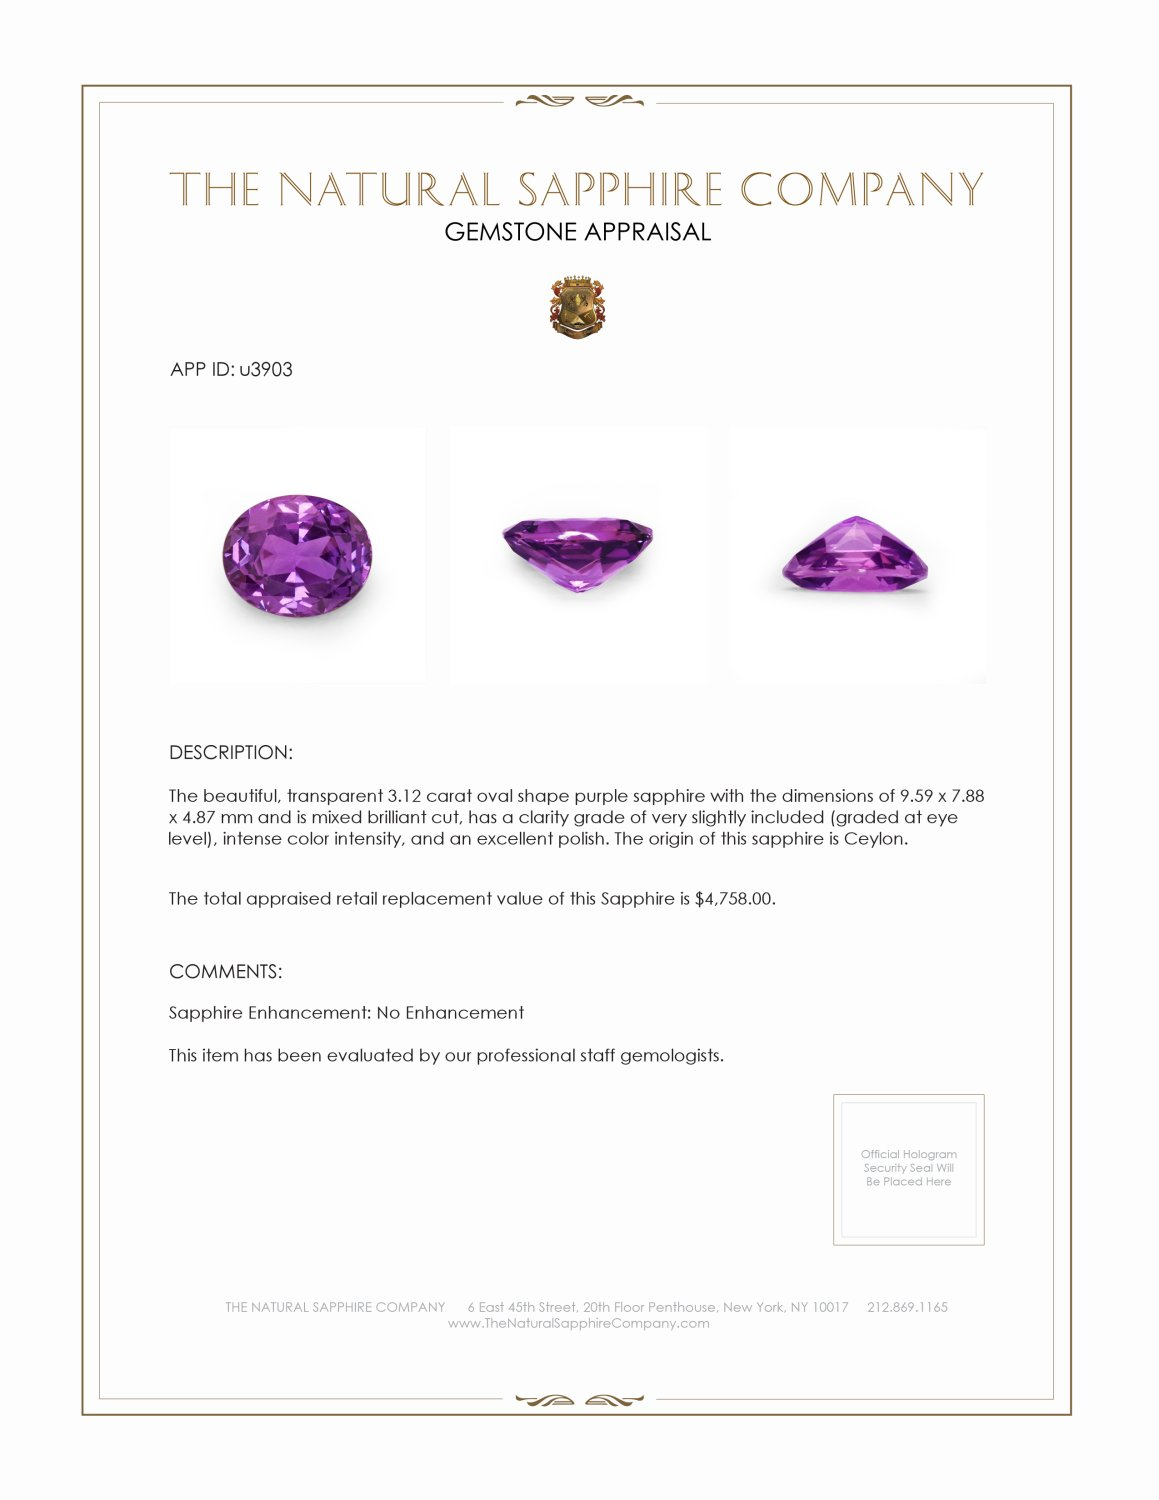 Natural Untreated Purple Sapphire U3903 Certification 3